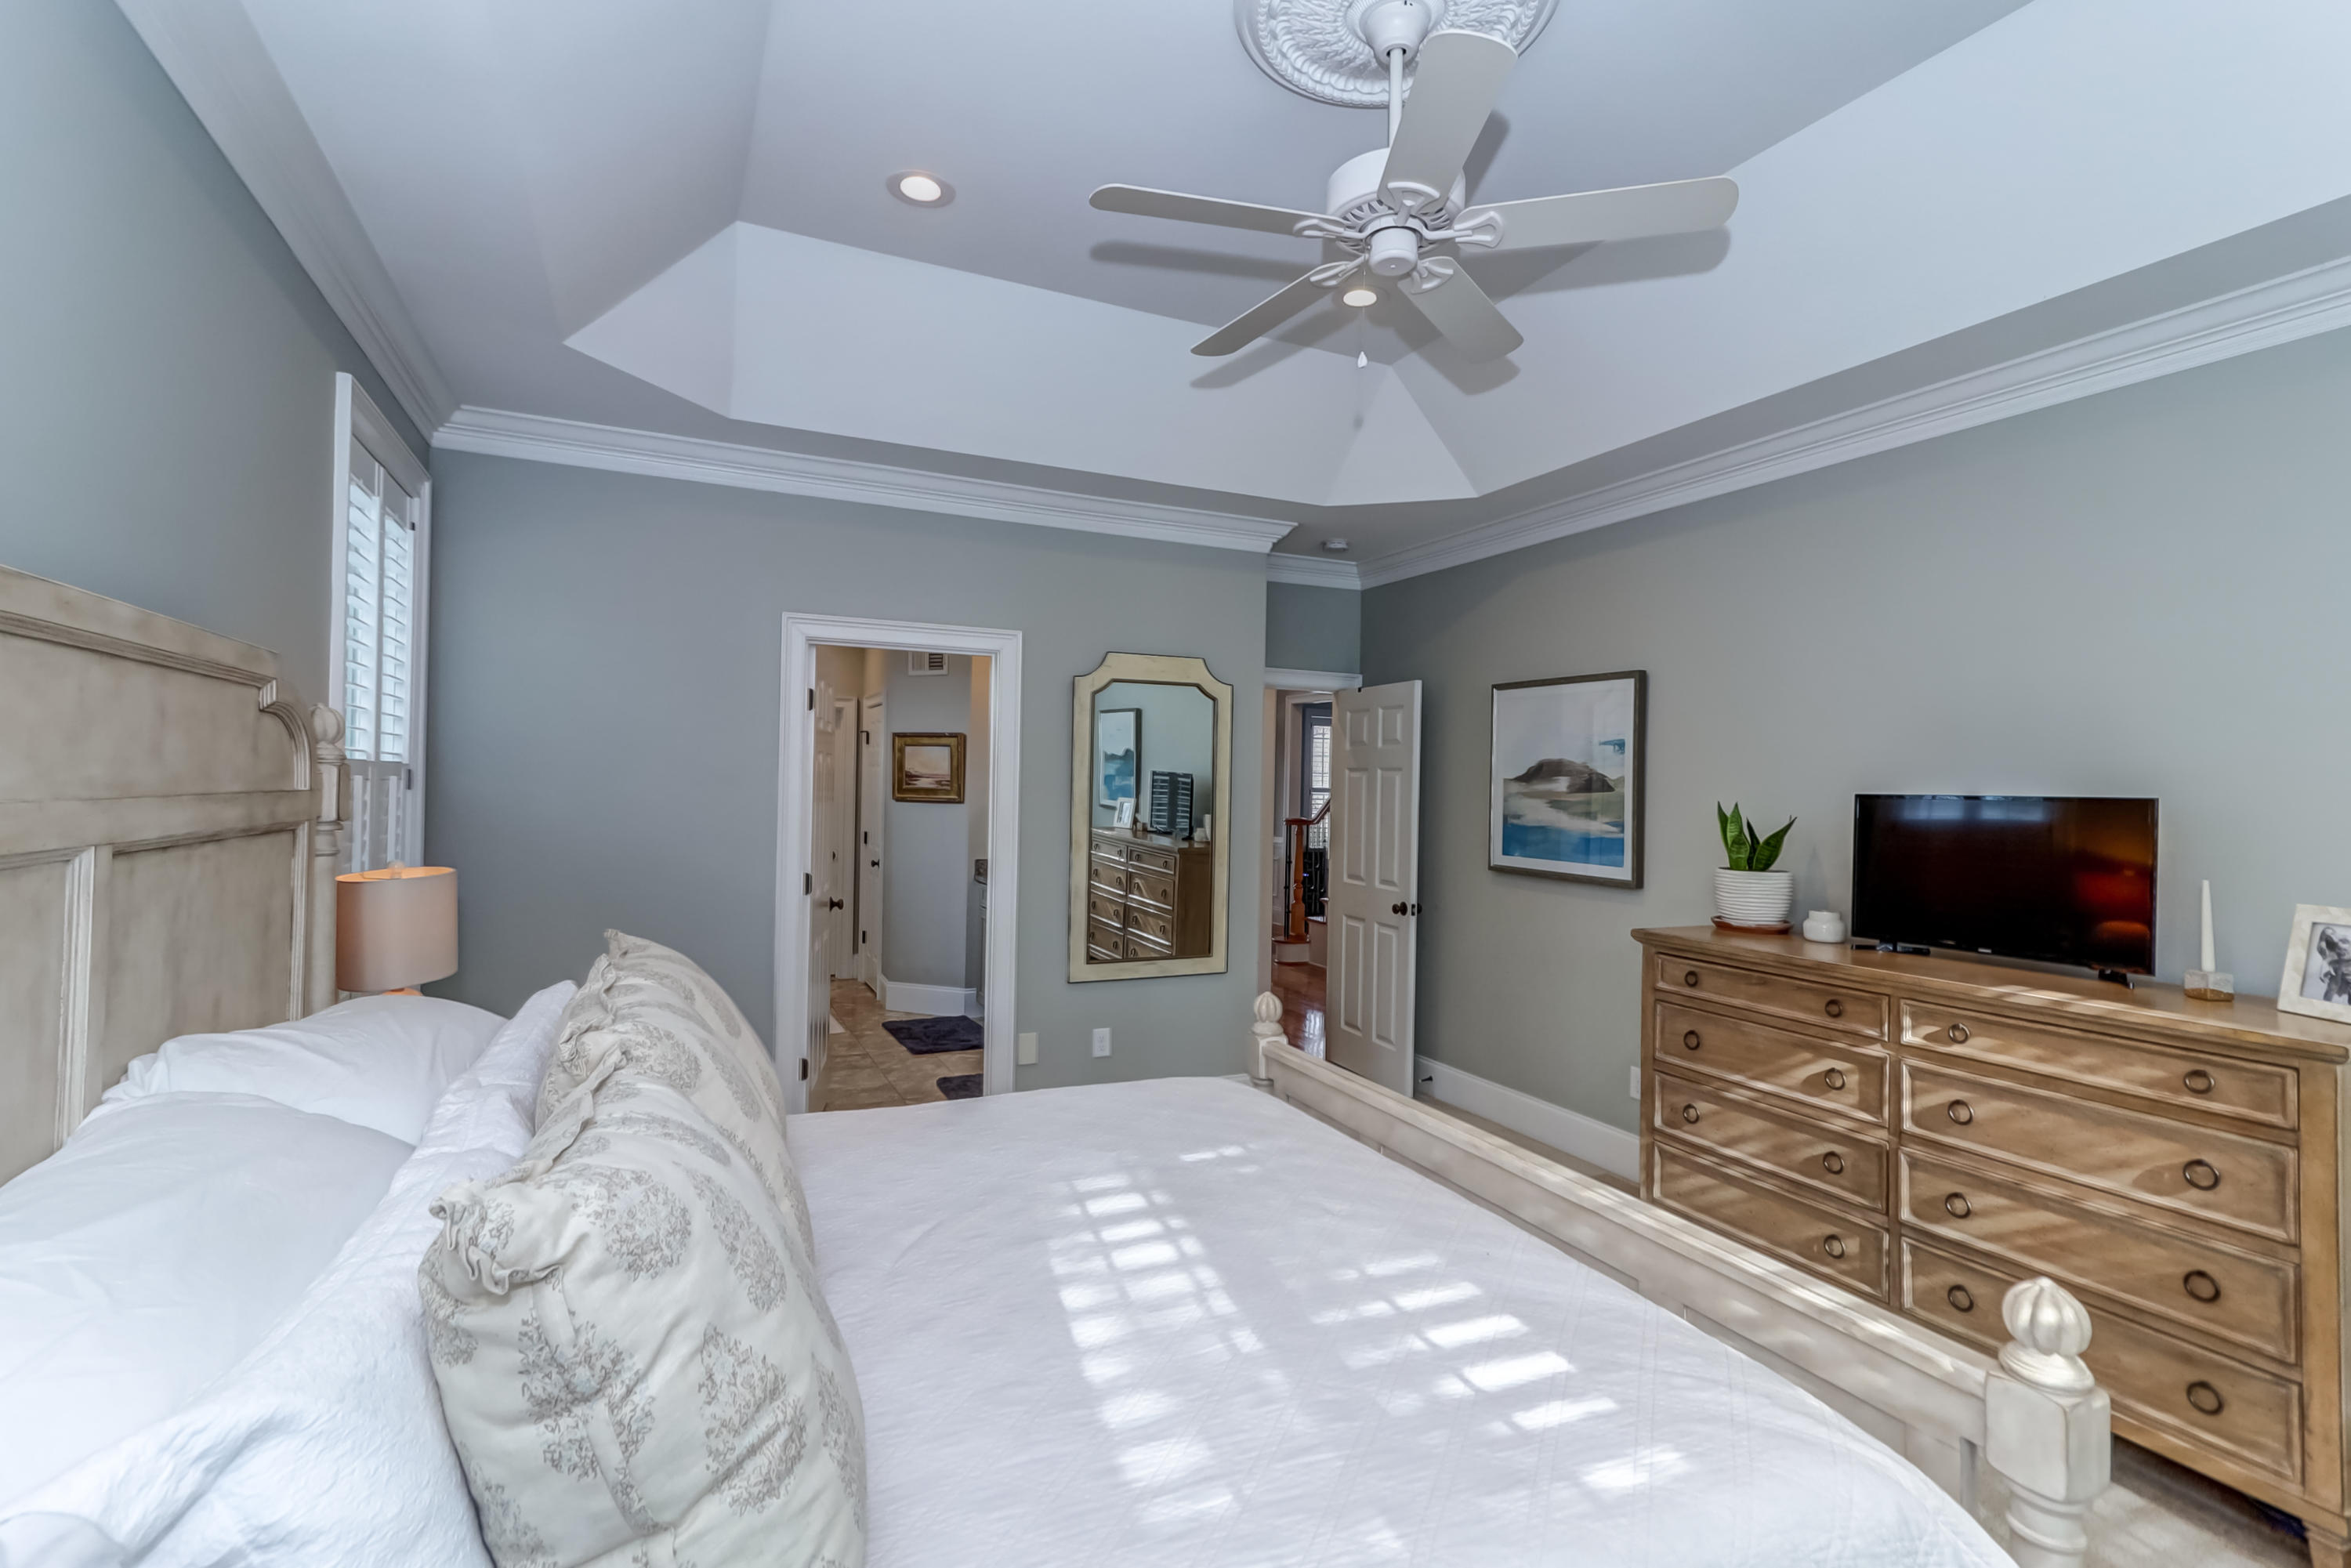 Woodward Pointe Homes For Sale - 657 White Chapel, Charleston, SC - 15